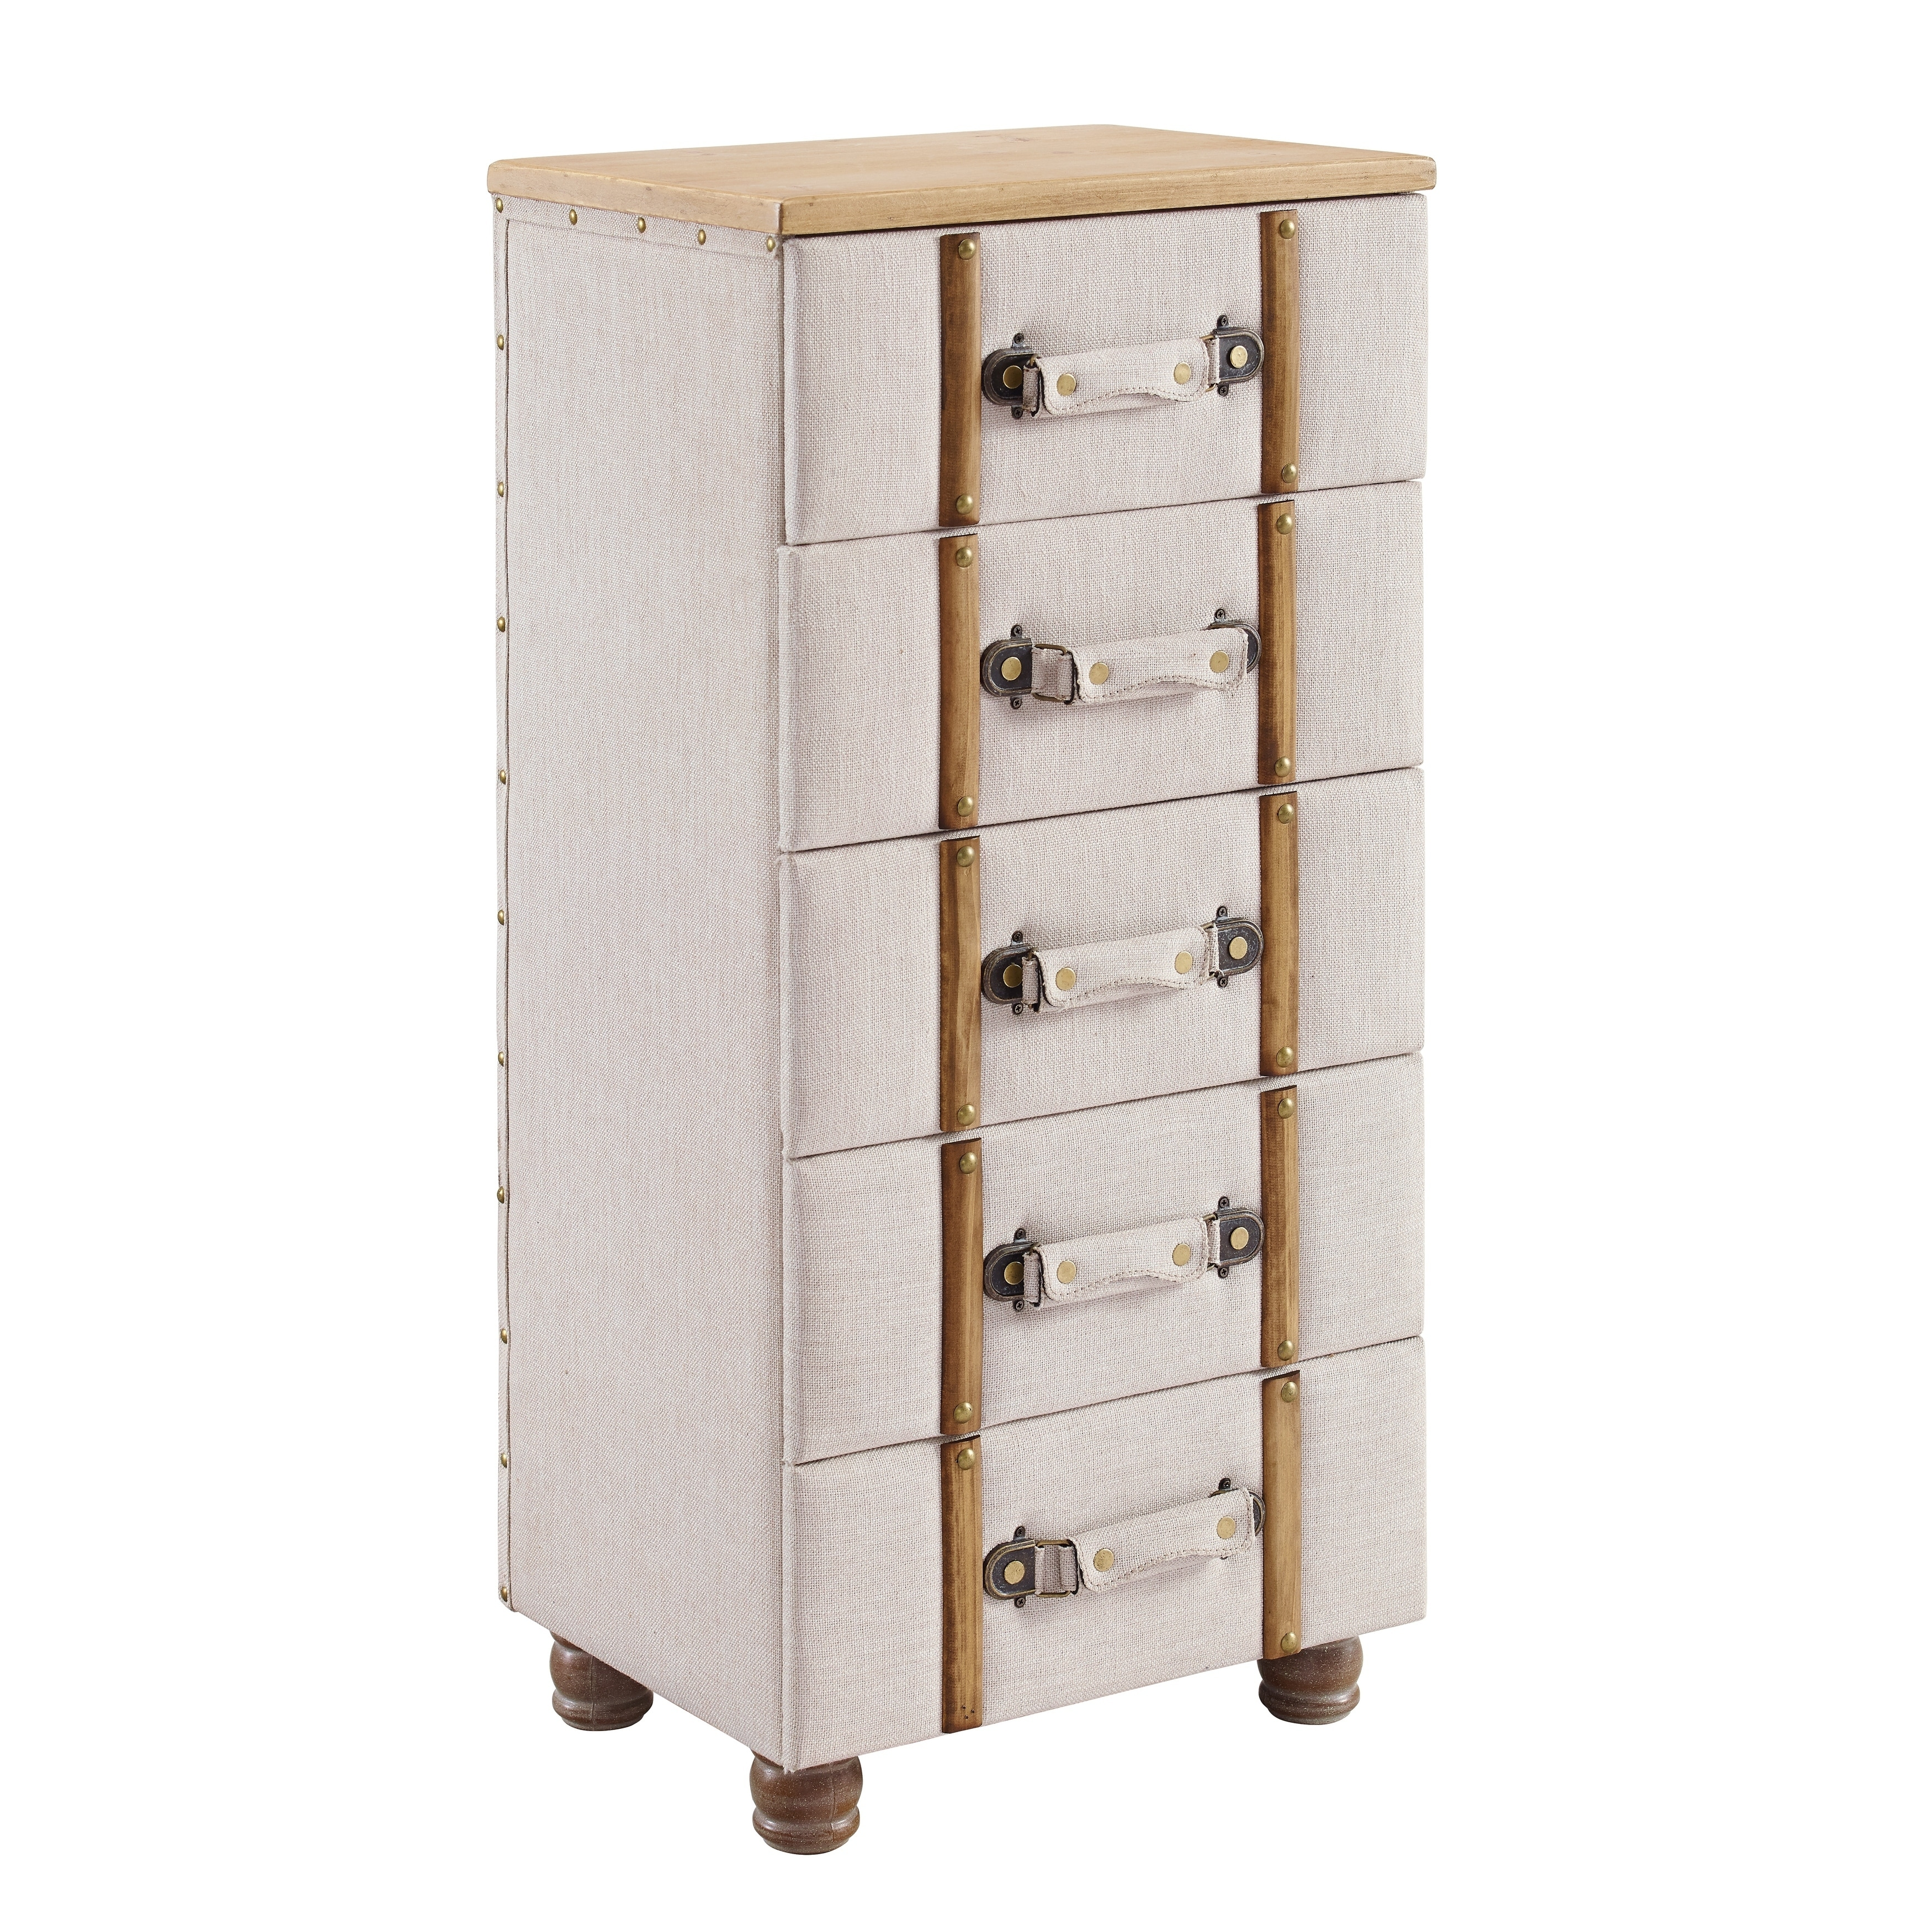 Padded Wood and Fabric Chest Cabinet with 5 Drawers, Cream and Brown